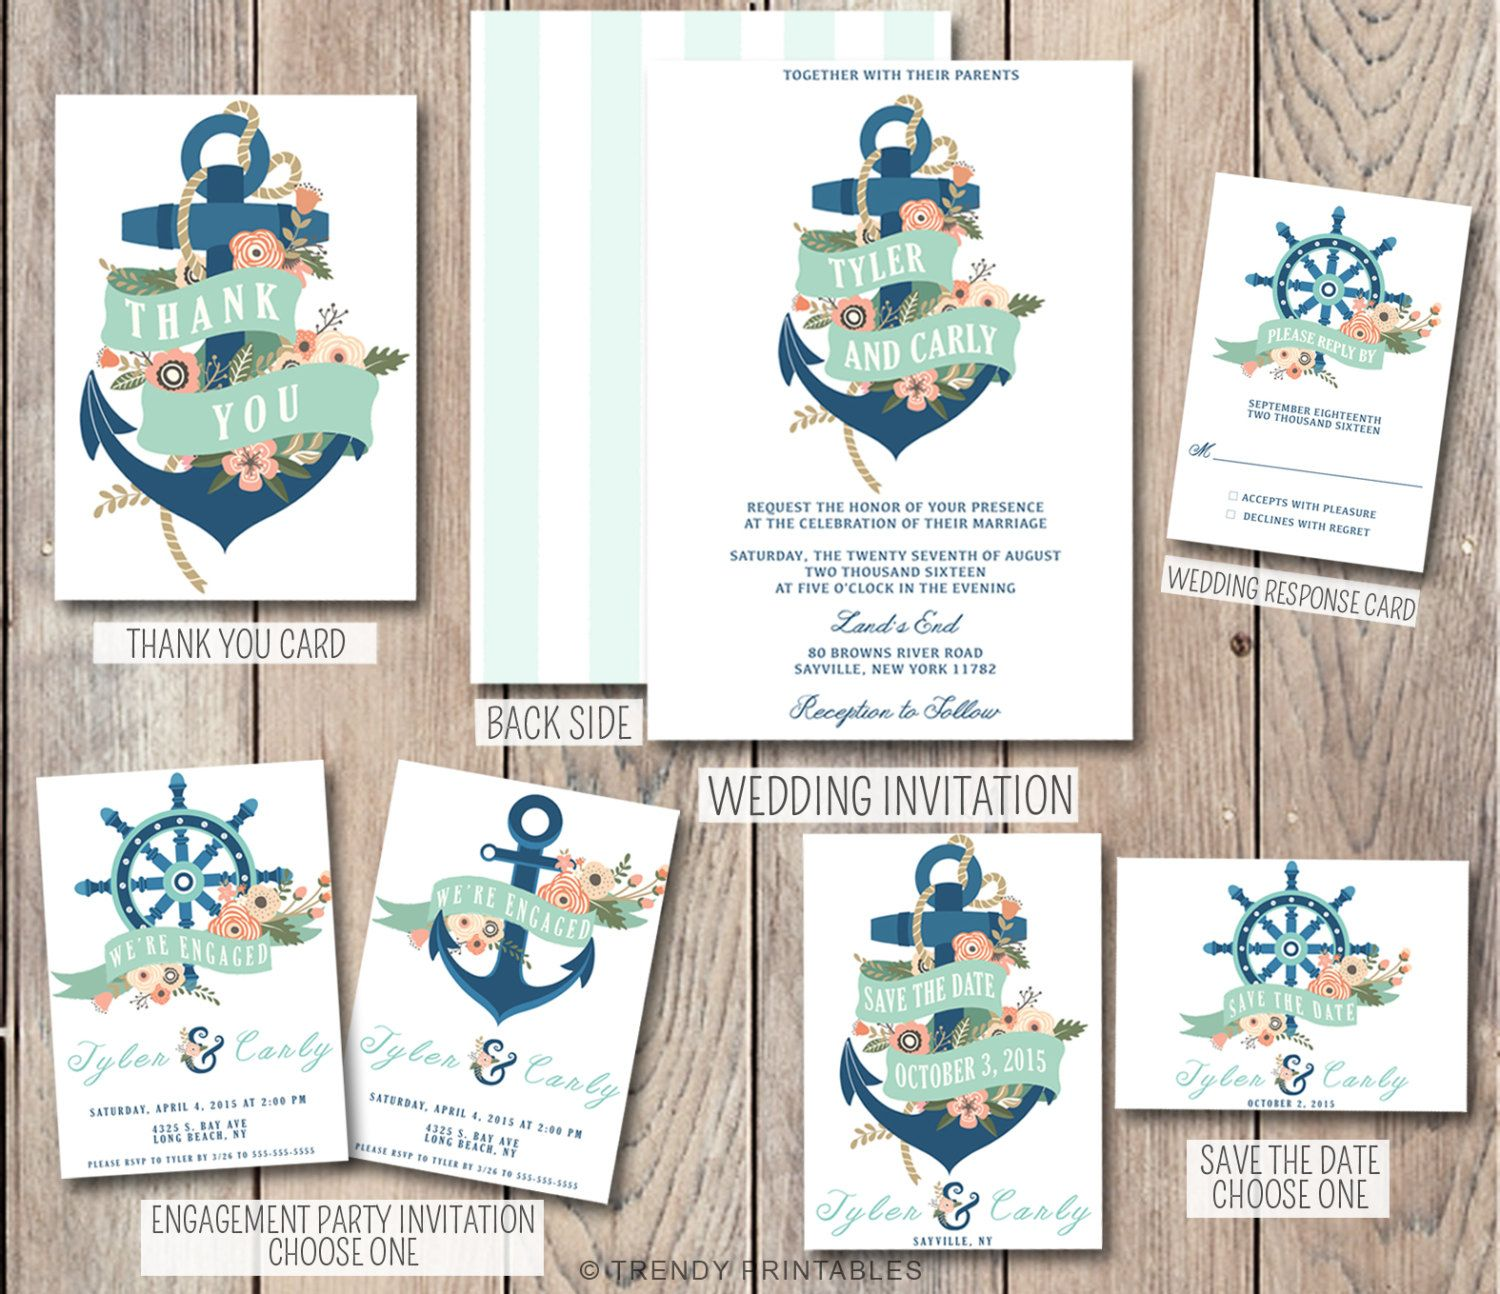 Anchor Wedding Invitation Nautical Wedding Invitation Engagement Party Invite Anchor Save The Date Nautica Invitaciones De Boda Boda Marinera Cosas De Boda